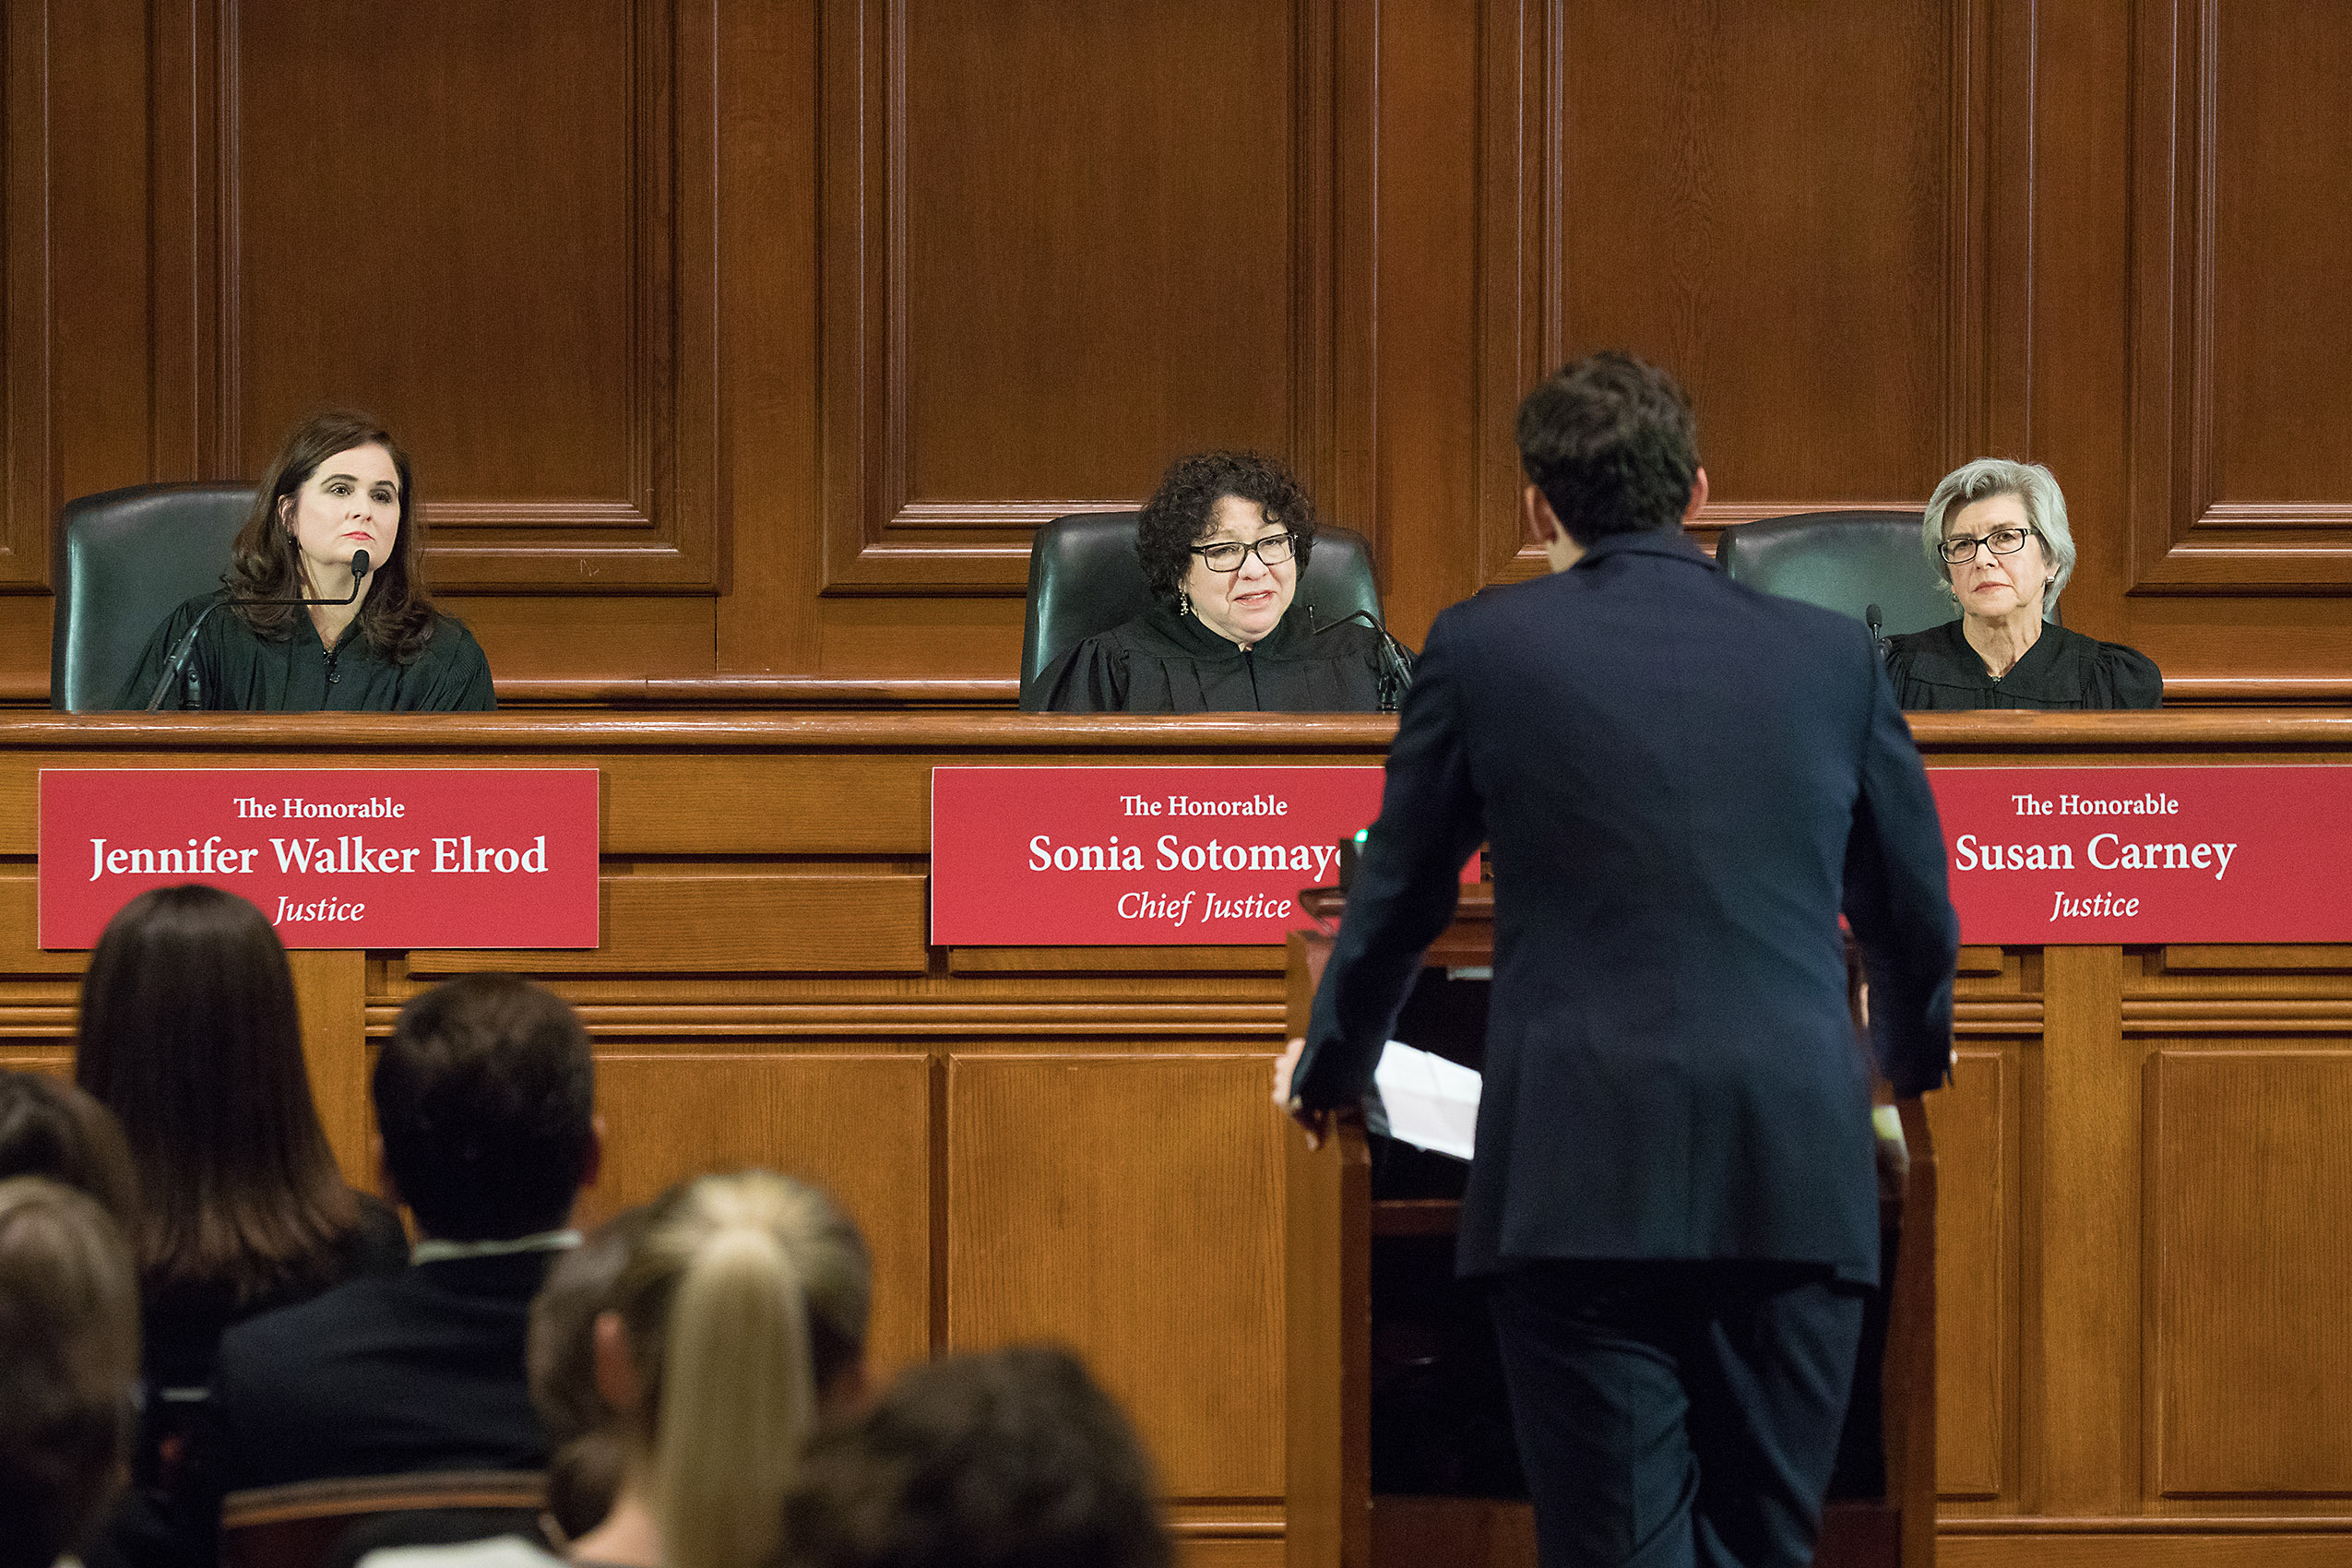 An Ames Moot Court participant stands at a podium in front of three judges sitting on the bench